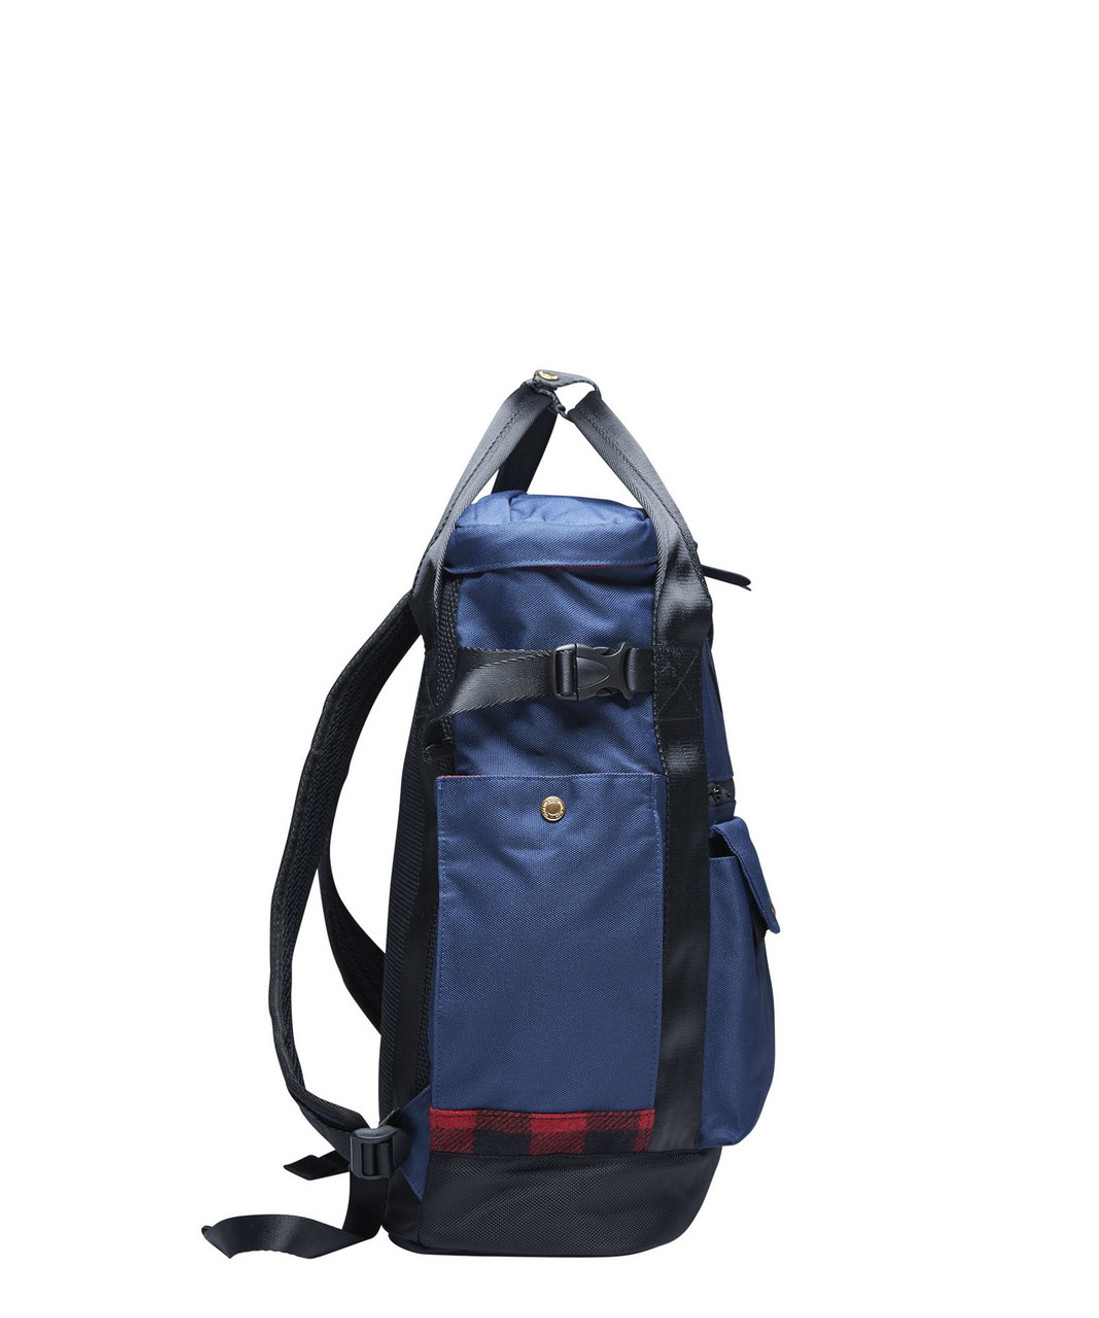 820ff0daad1 Woolrich X The Hill-Side Backpack Bag - Woolrich